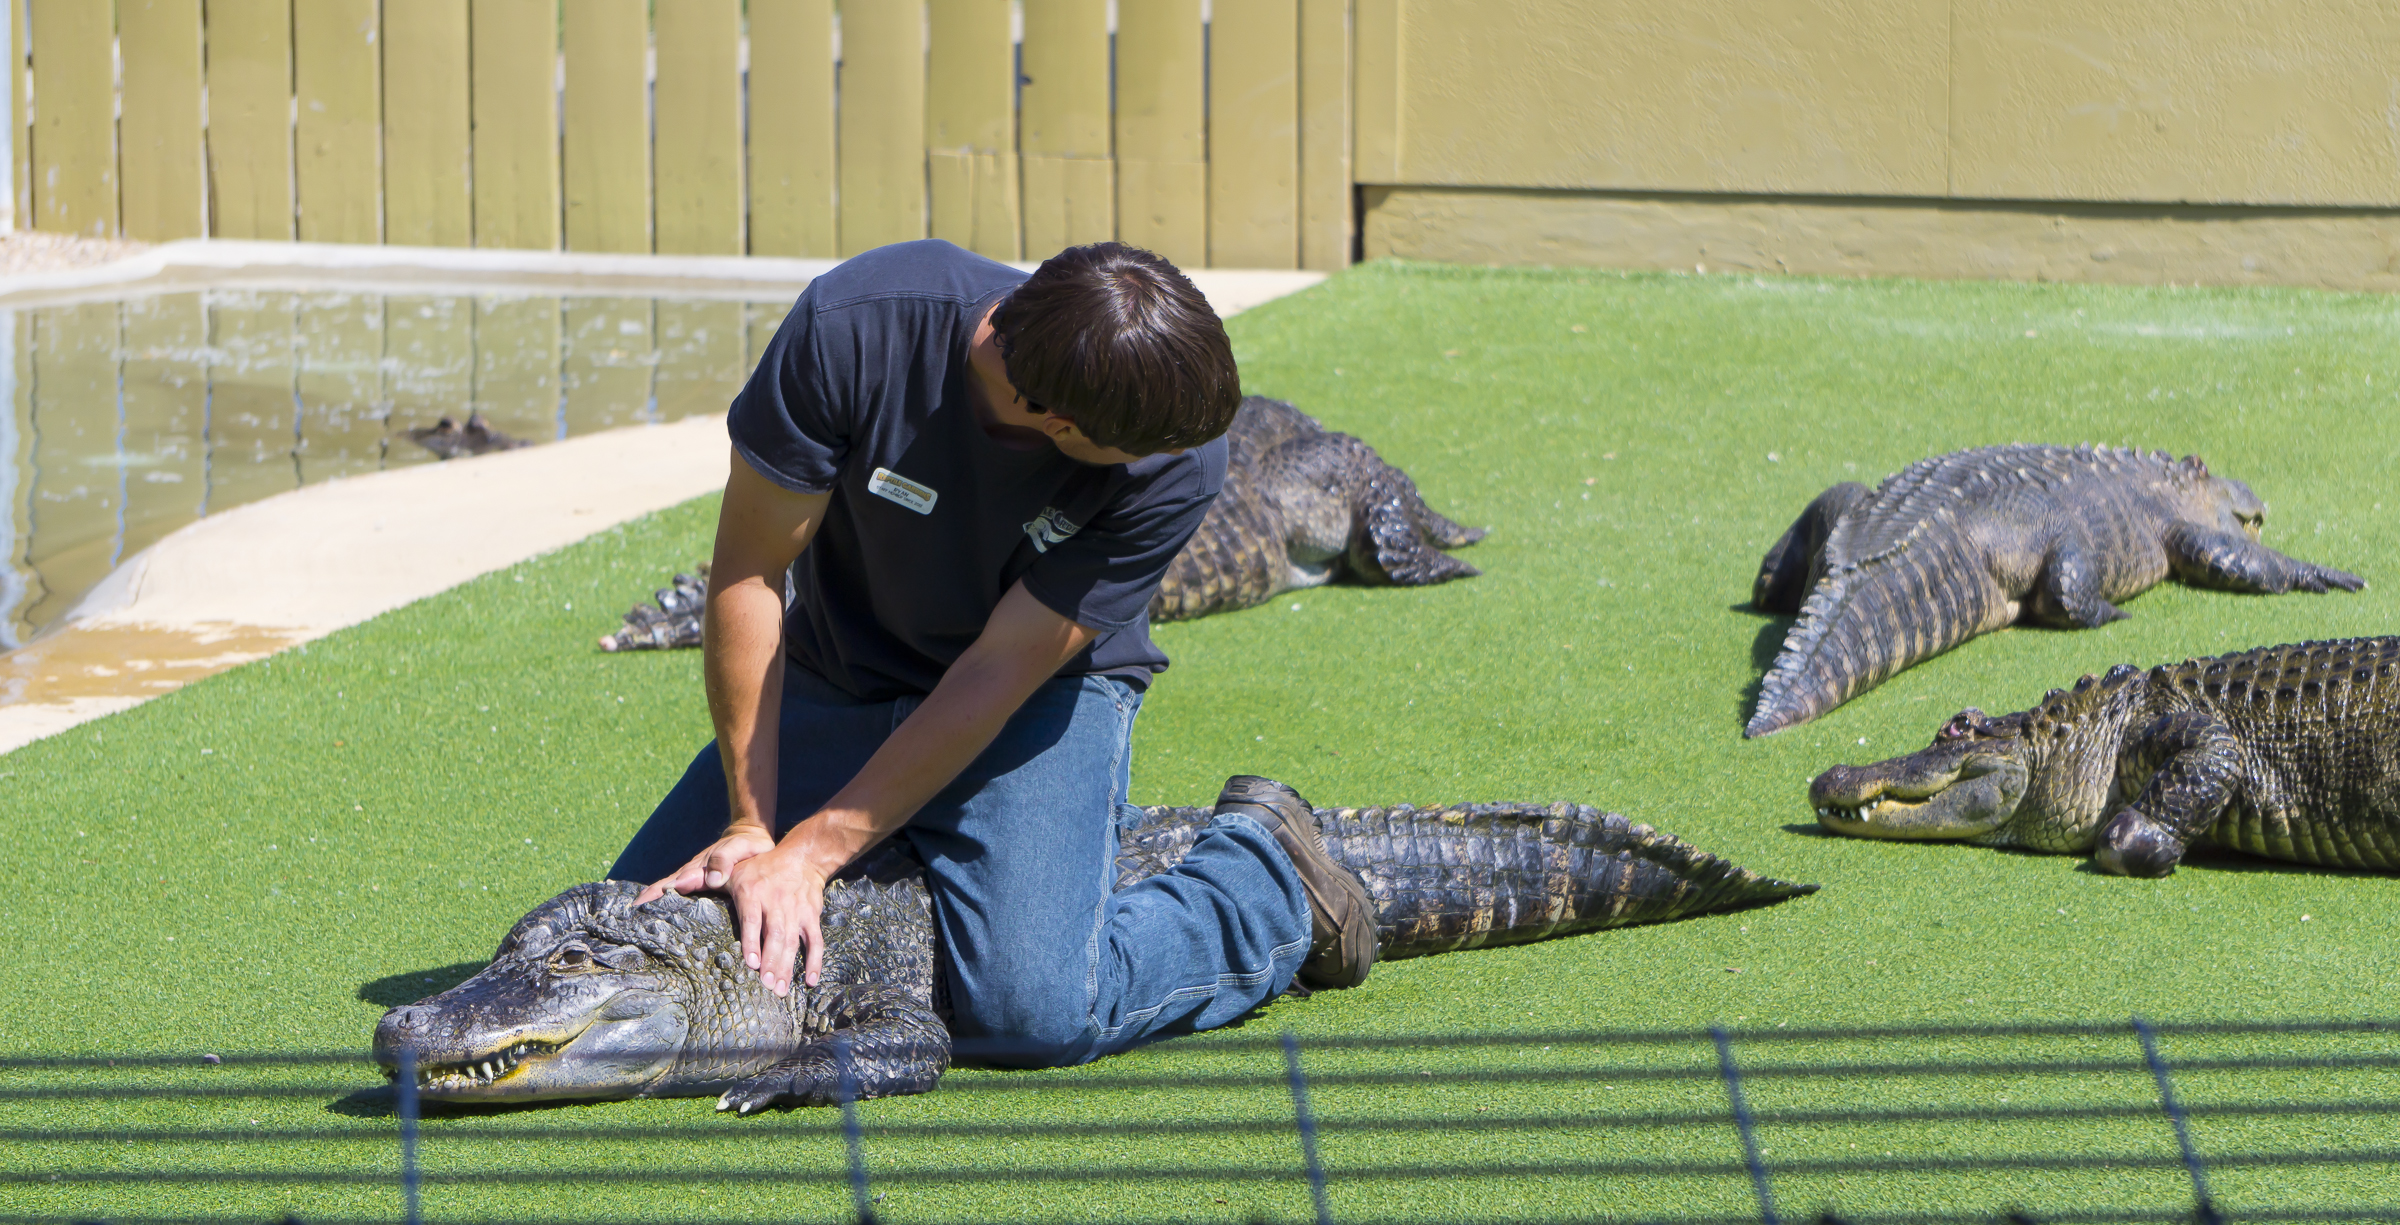 Gators love people, they taste like chicken!